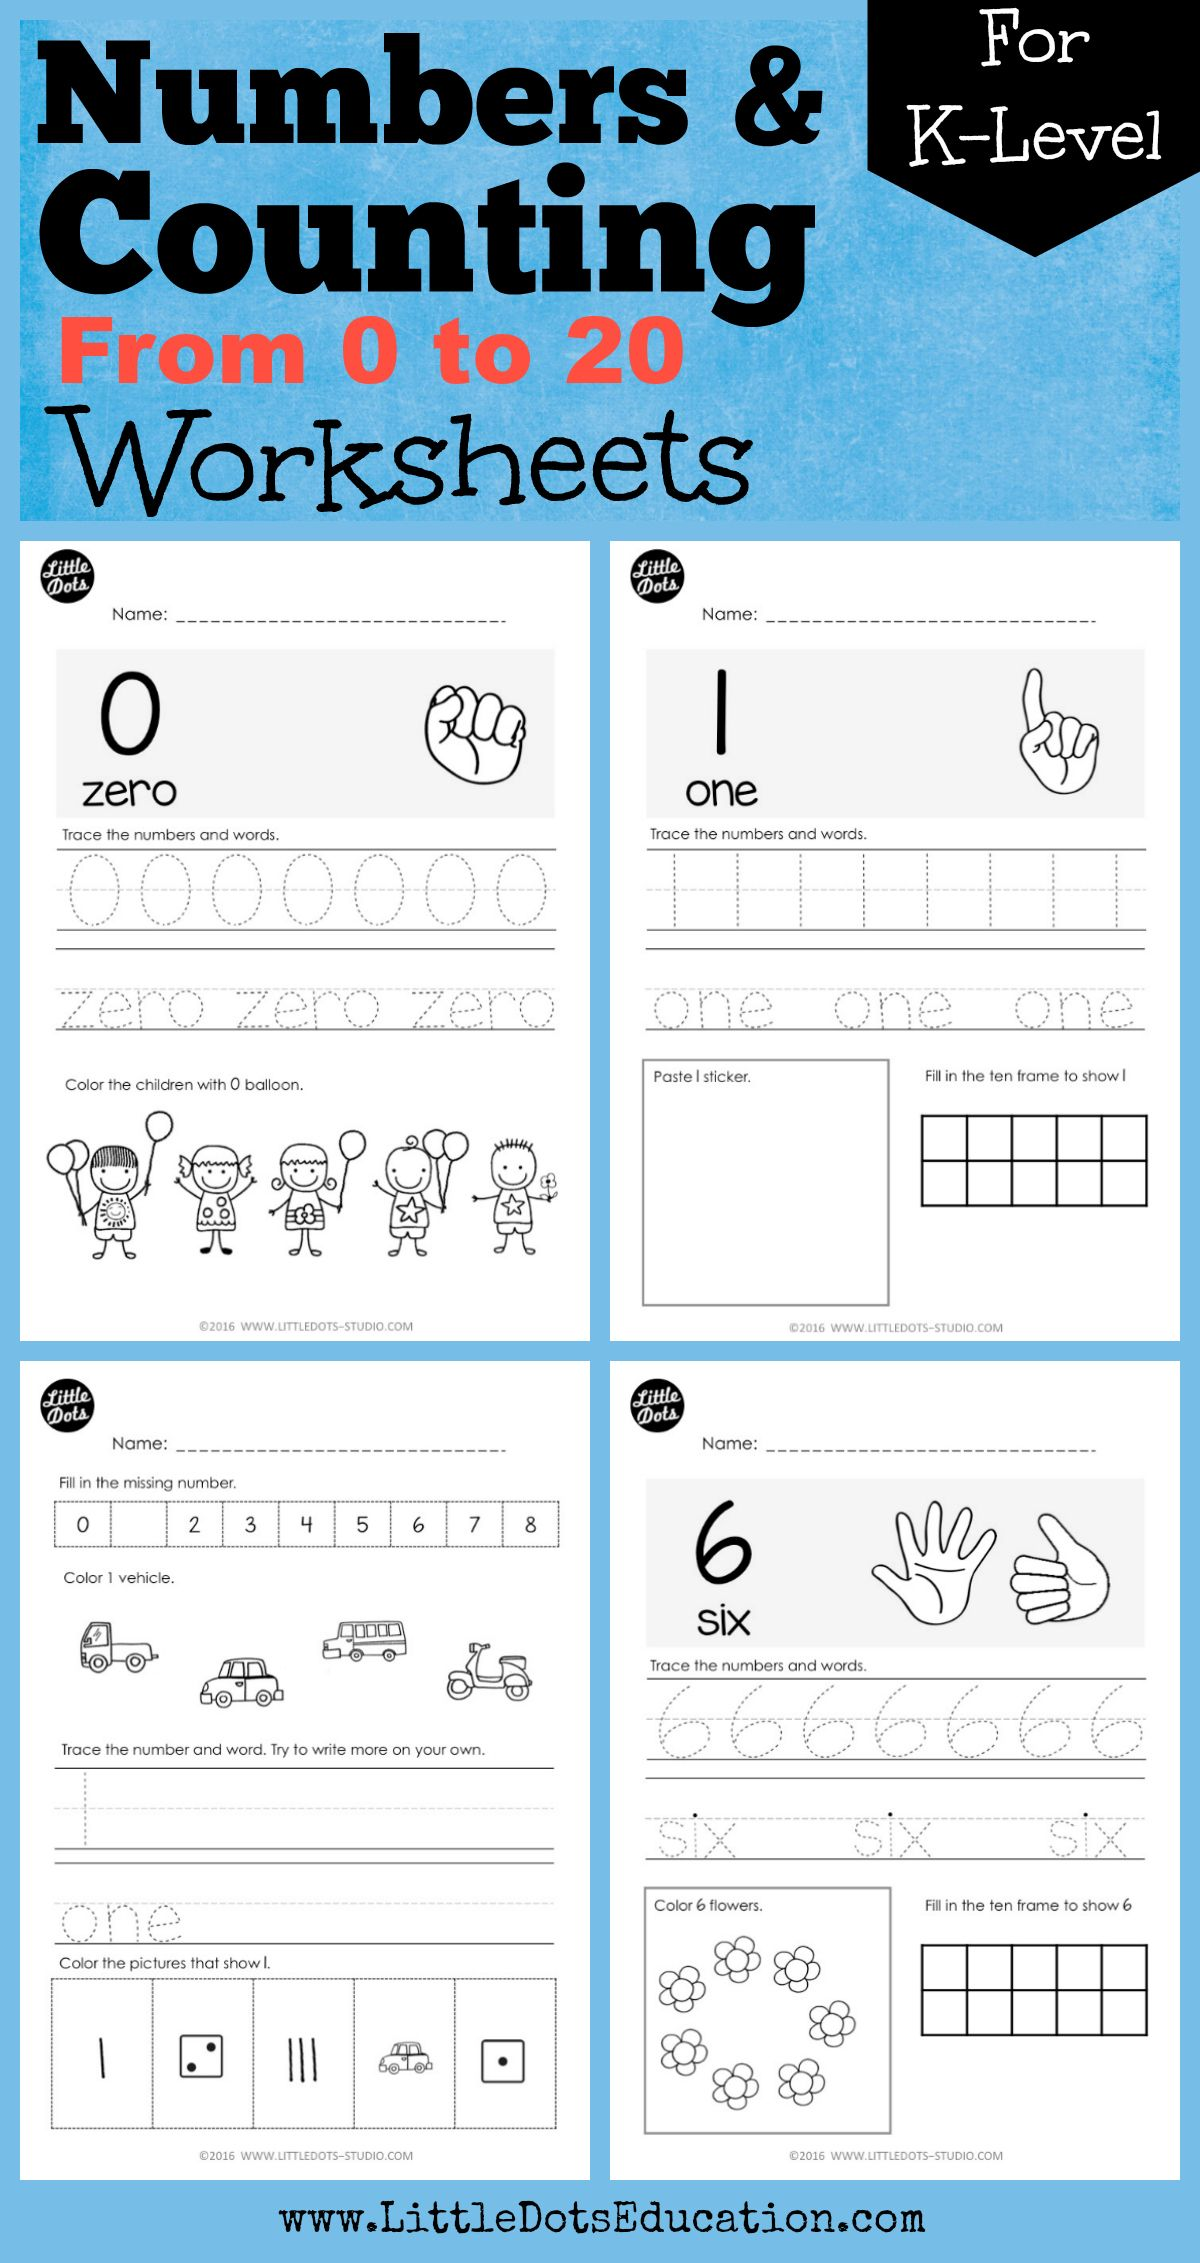 Download Numbers And Counting Worksheets From 0 To 20